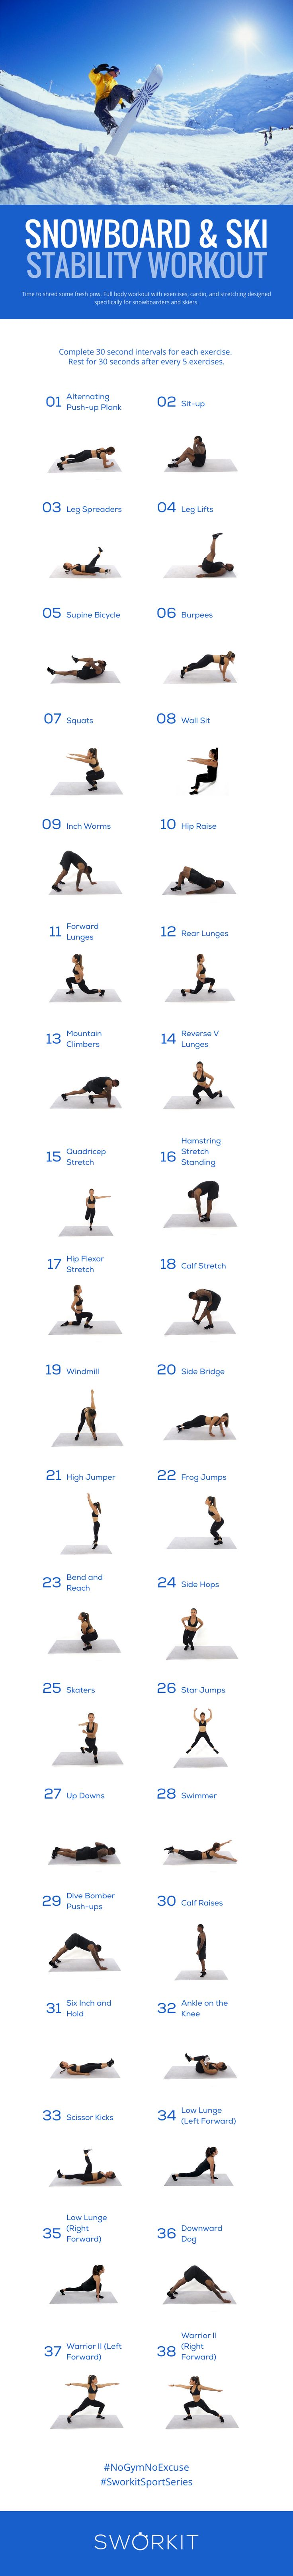 Snowboard and Ski custom workout for Sworkit for iOS and Android. If you have the Sworkit app, you can import this workout directly into the app: http://yogisurprise.com/pinterest | Full body workout with exercises, cardio, and stretching de